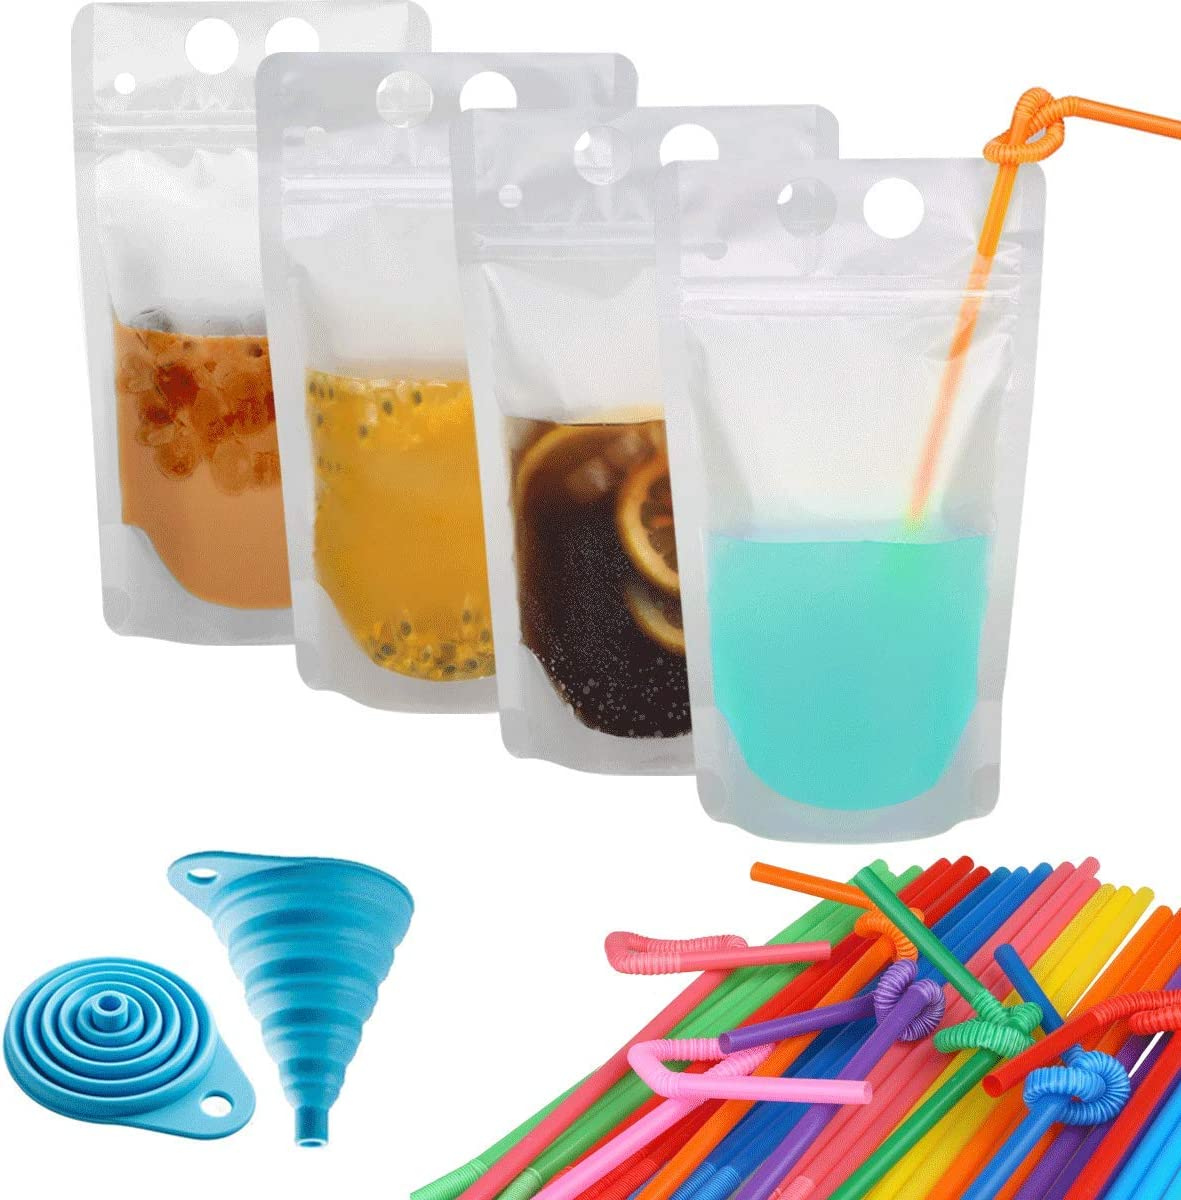 100 Pcs Zipper Plastic Pouches Drink Bags,Heavy Duty Hand-Held Translucent Frosted Reclosable Stand-up Bag 2.4